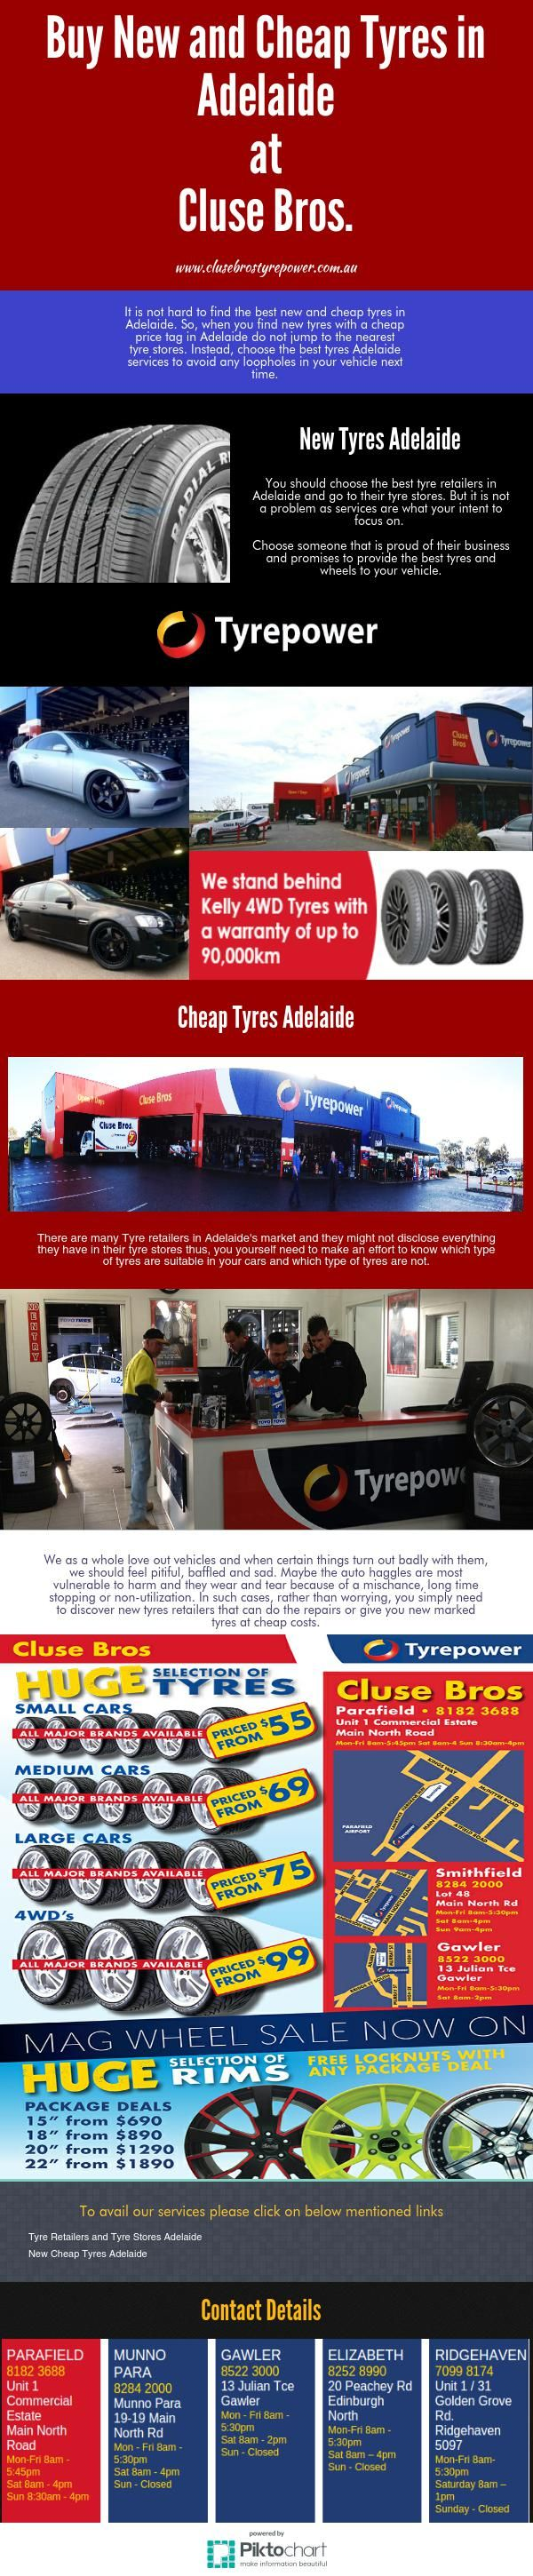 Please Visit: http://www.clusebrostyrepower.com.au/cheap-tyres-adelaide